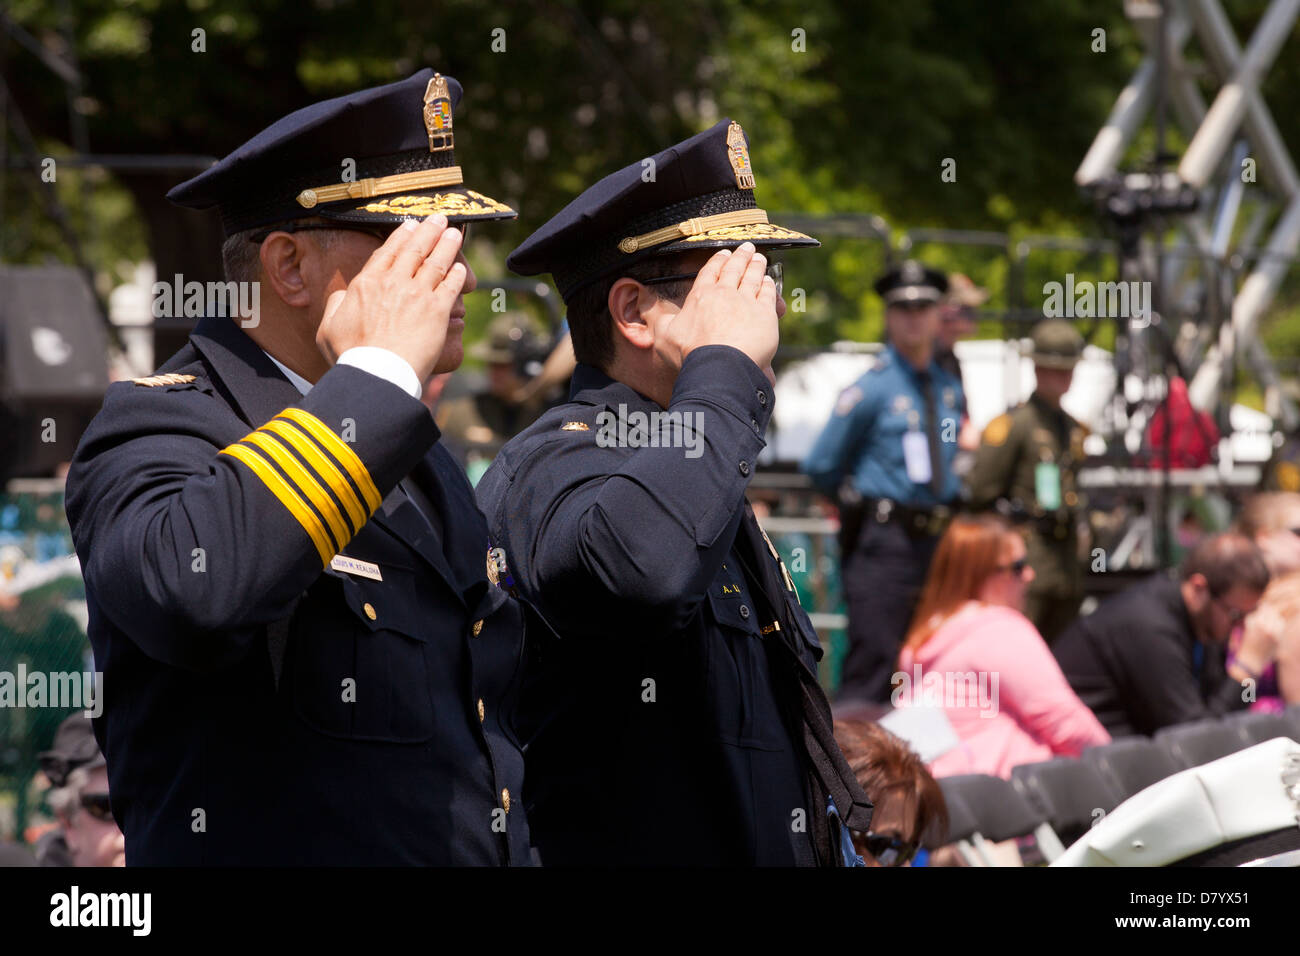 Police officers saluting, Police Week 2013 - Washington, DC USA - Stock Image